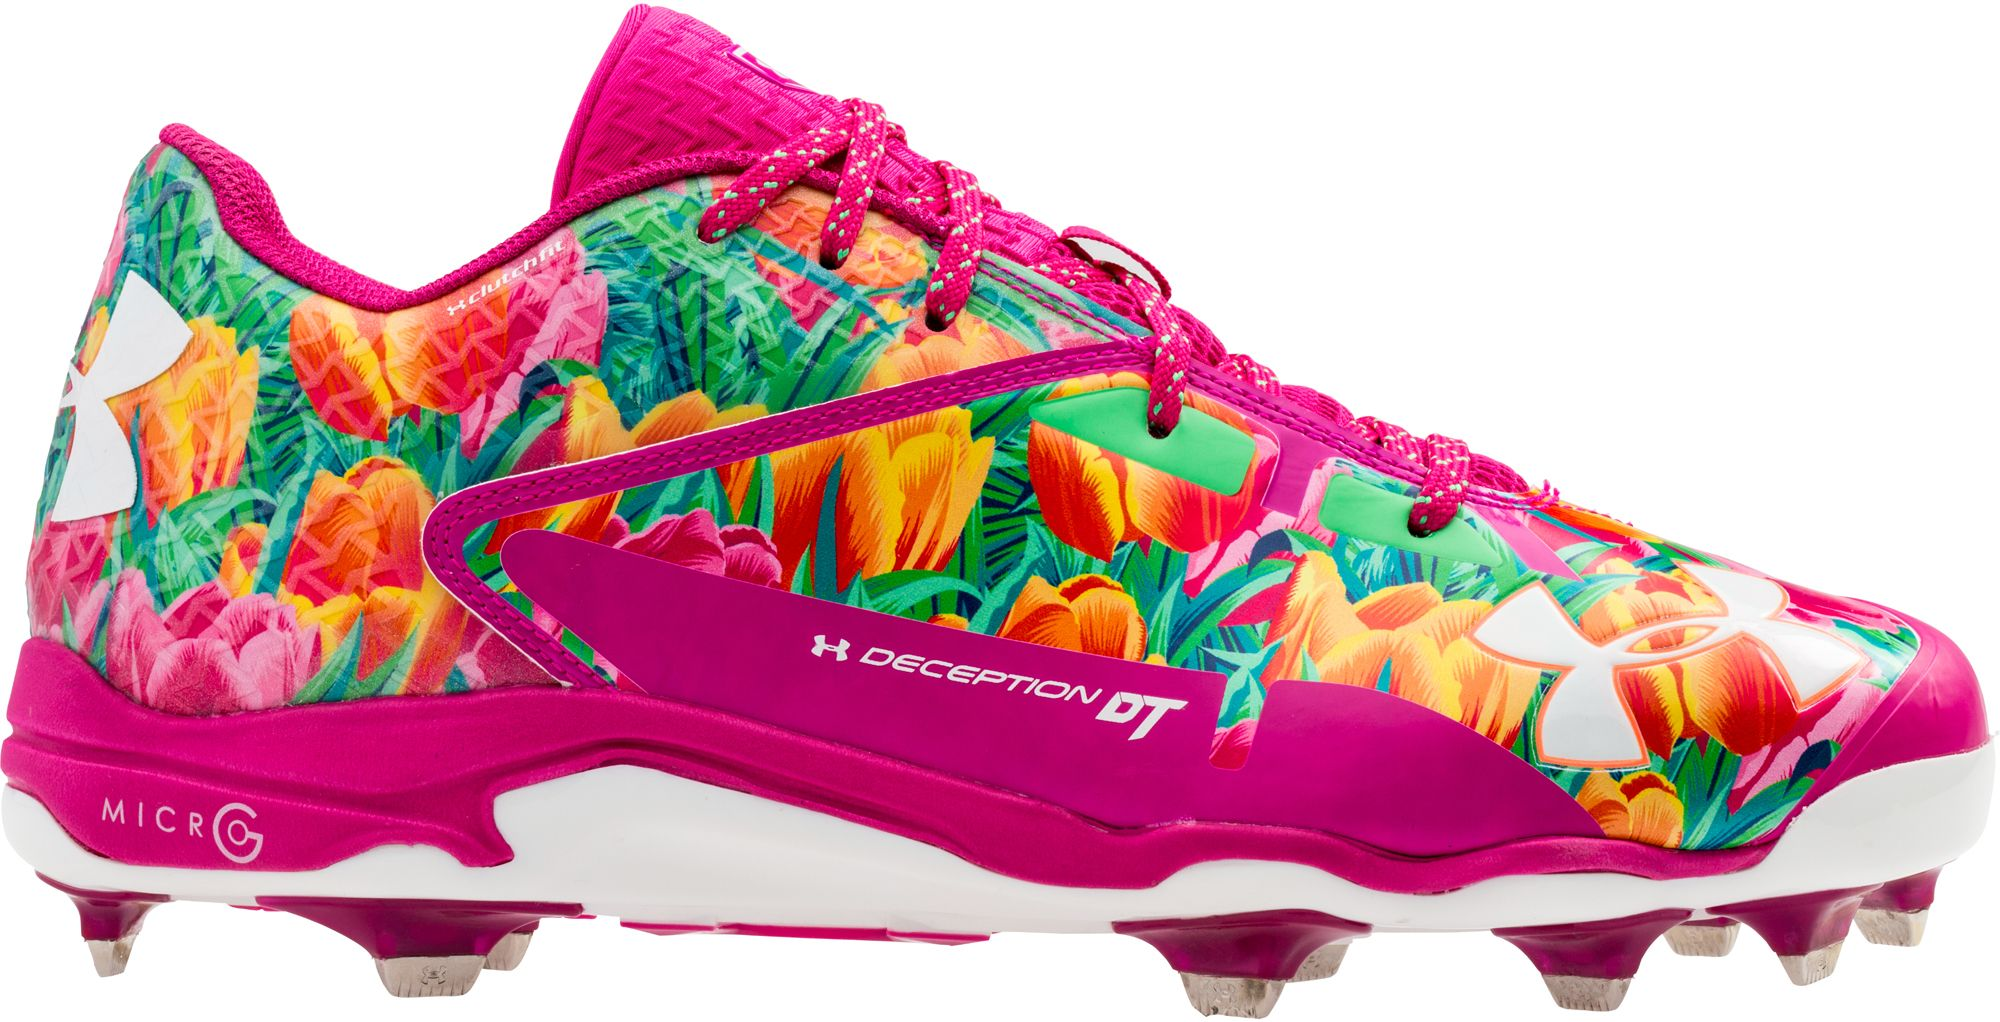 newest 1b489 04b78 ... Under Armour Mens Deception Low DT Mothers Day Baseball Cleats ...